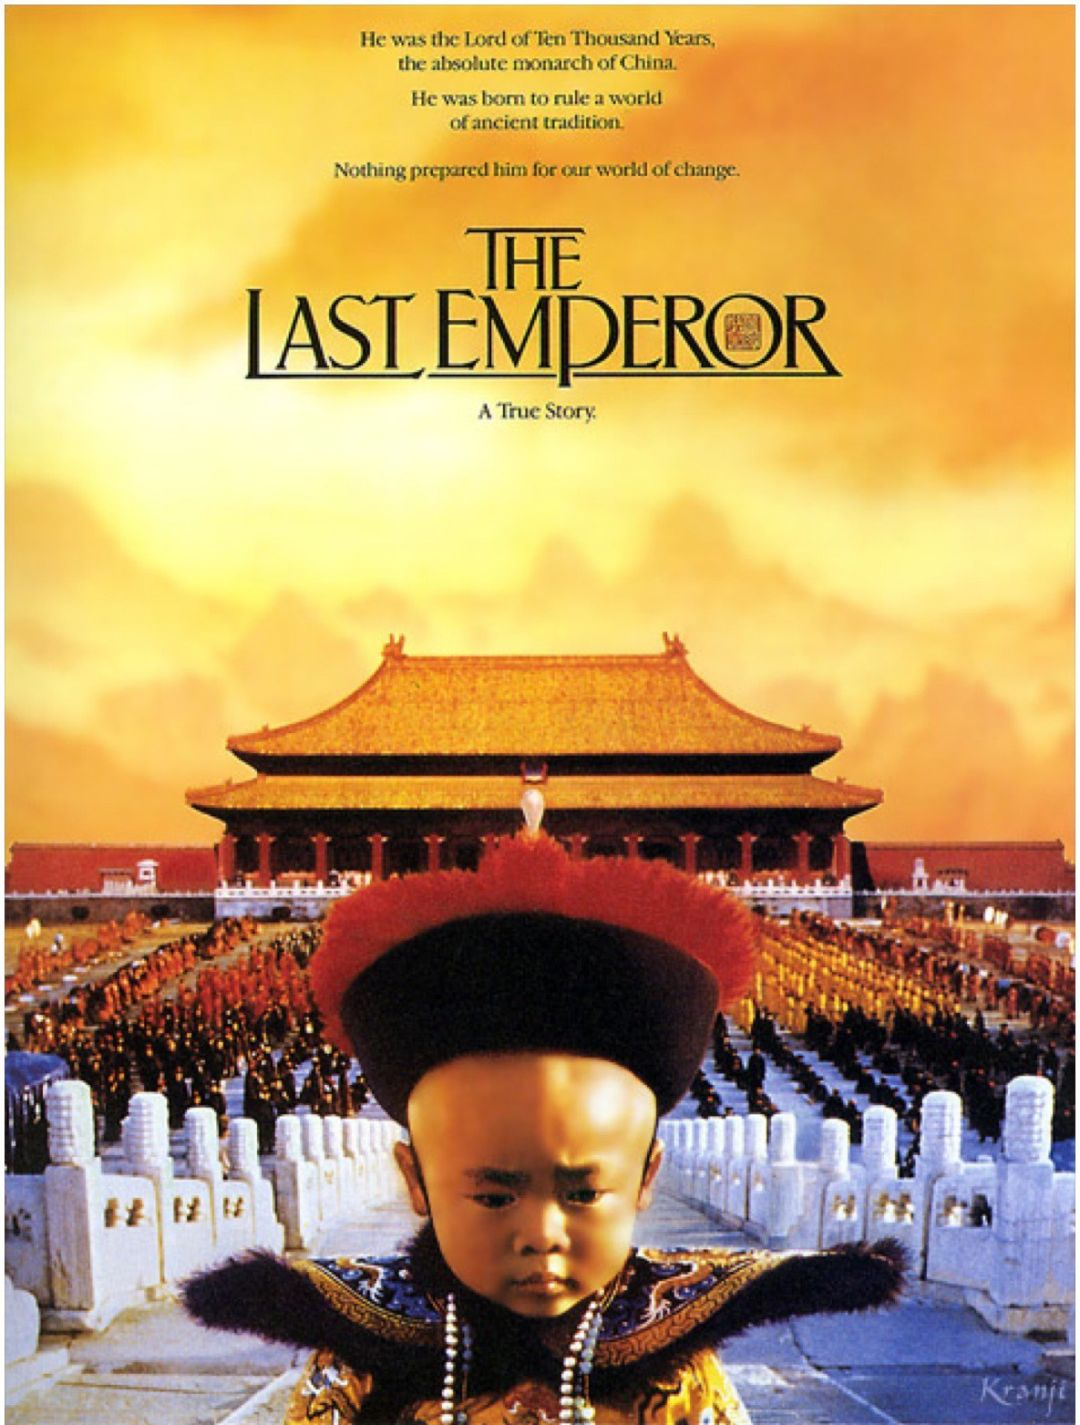 The last emperor movie poster1 osnny4